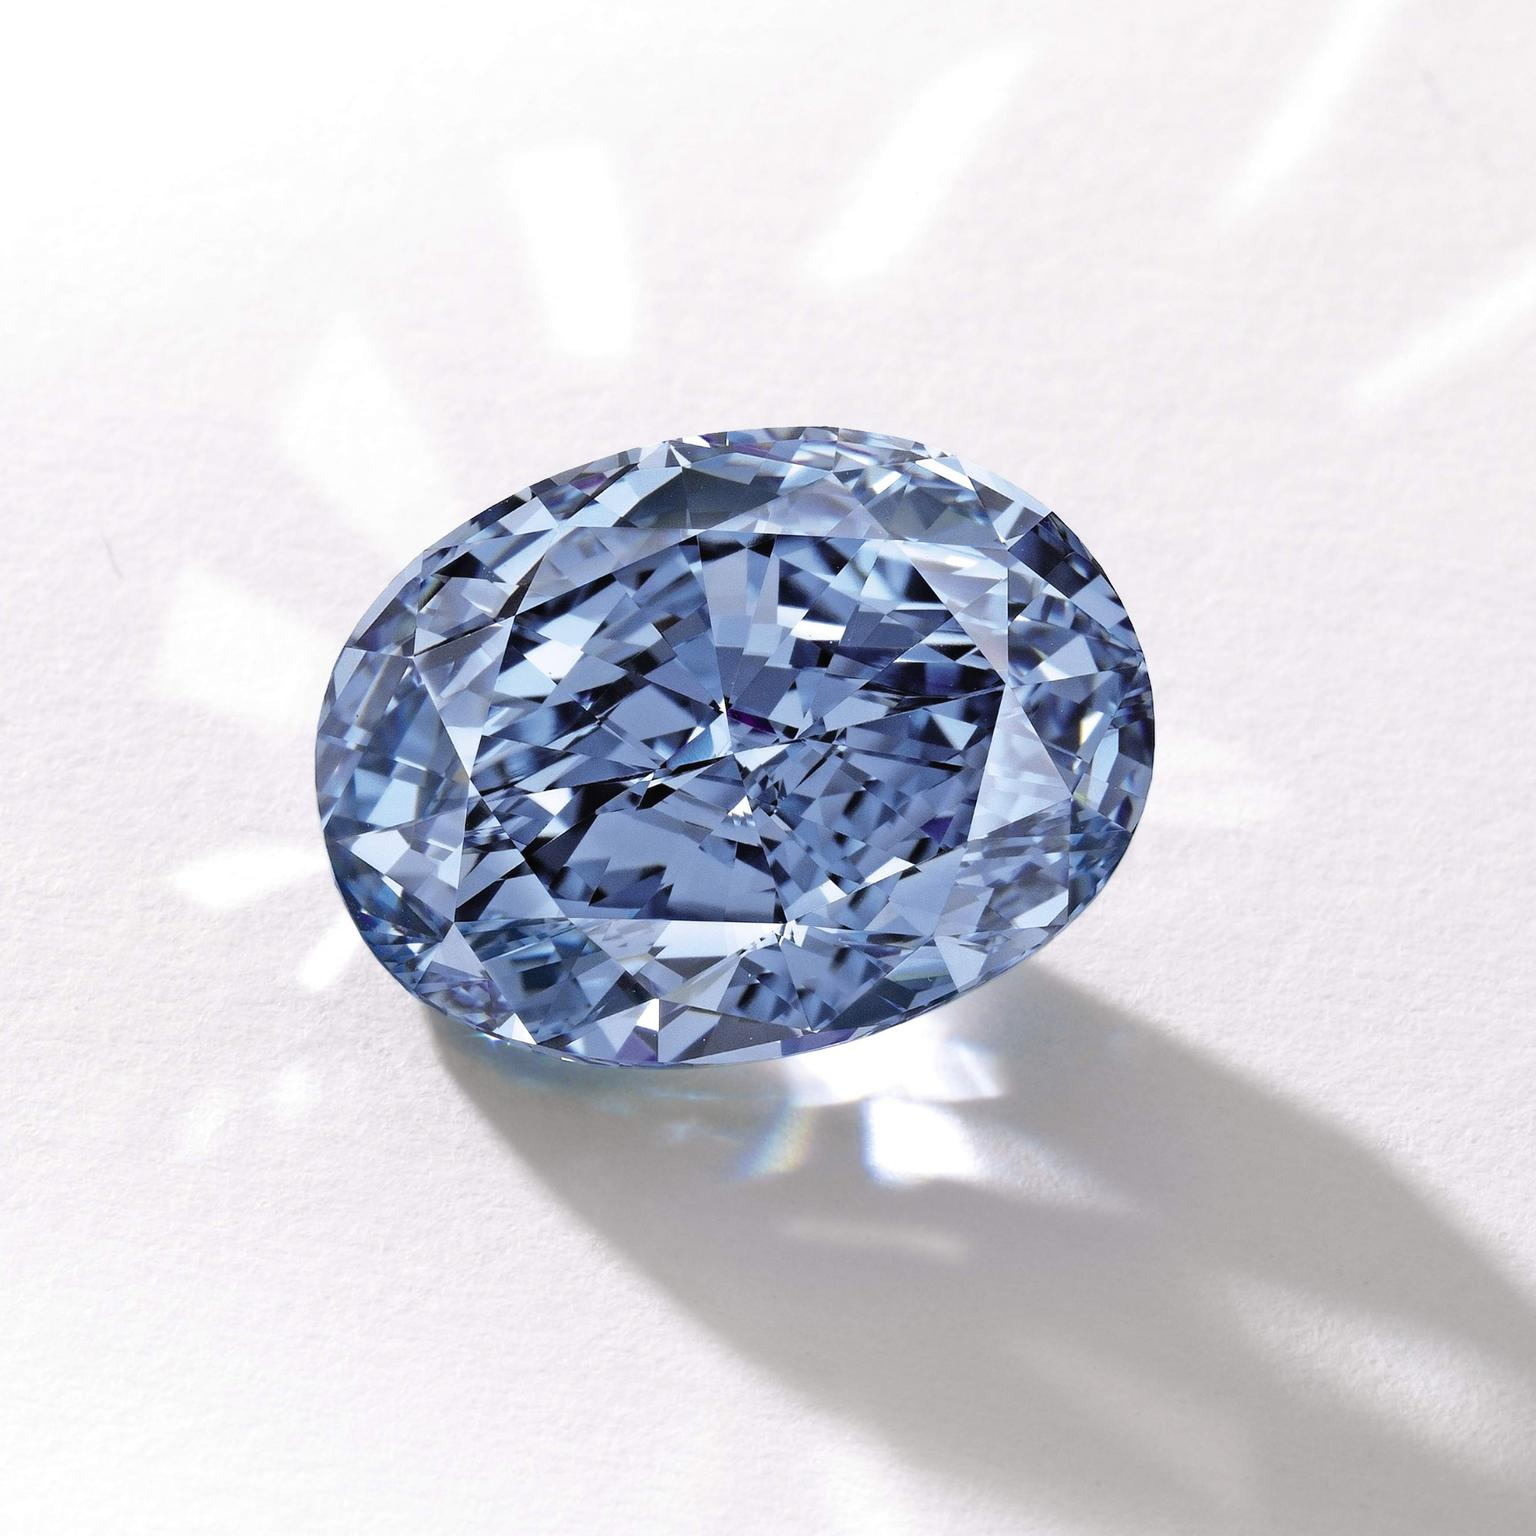 De Beers Millennium Jewel 4 blue diamond